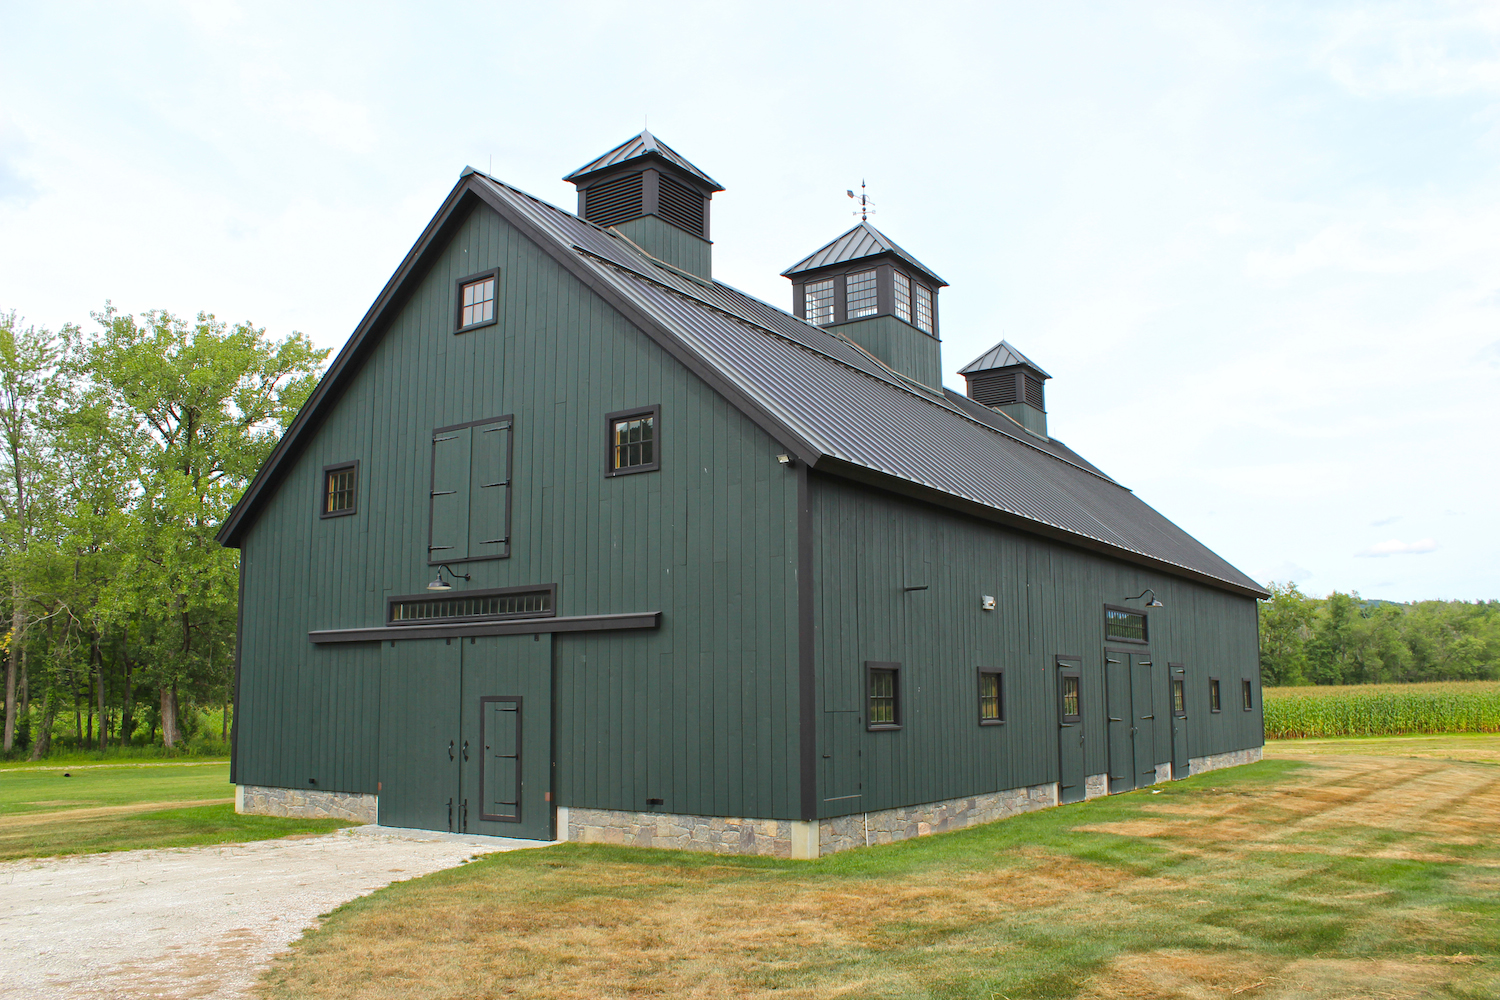 New england barn custom barns for New england barns for sale